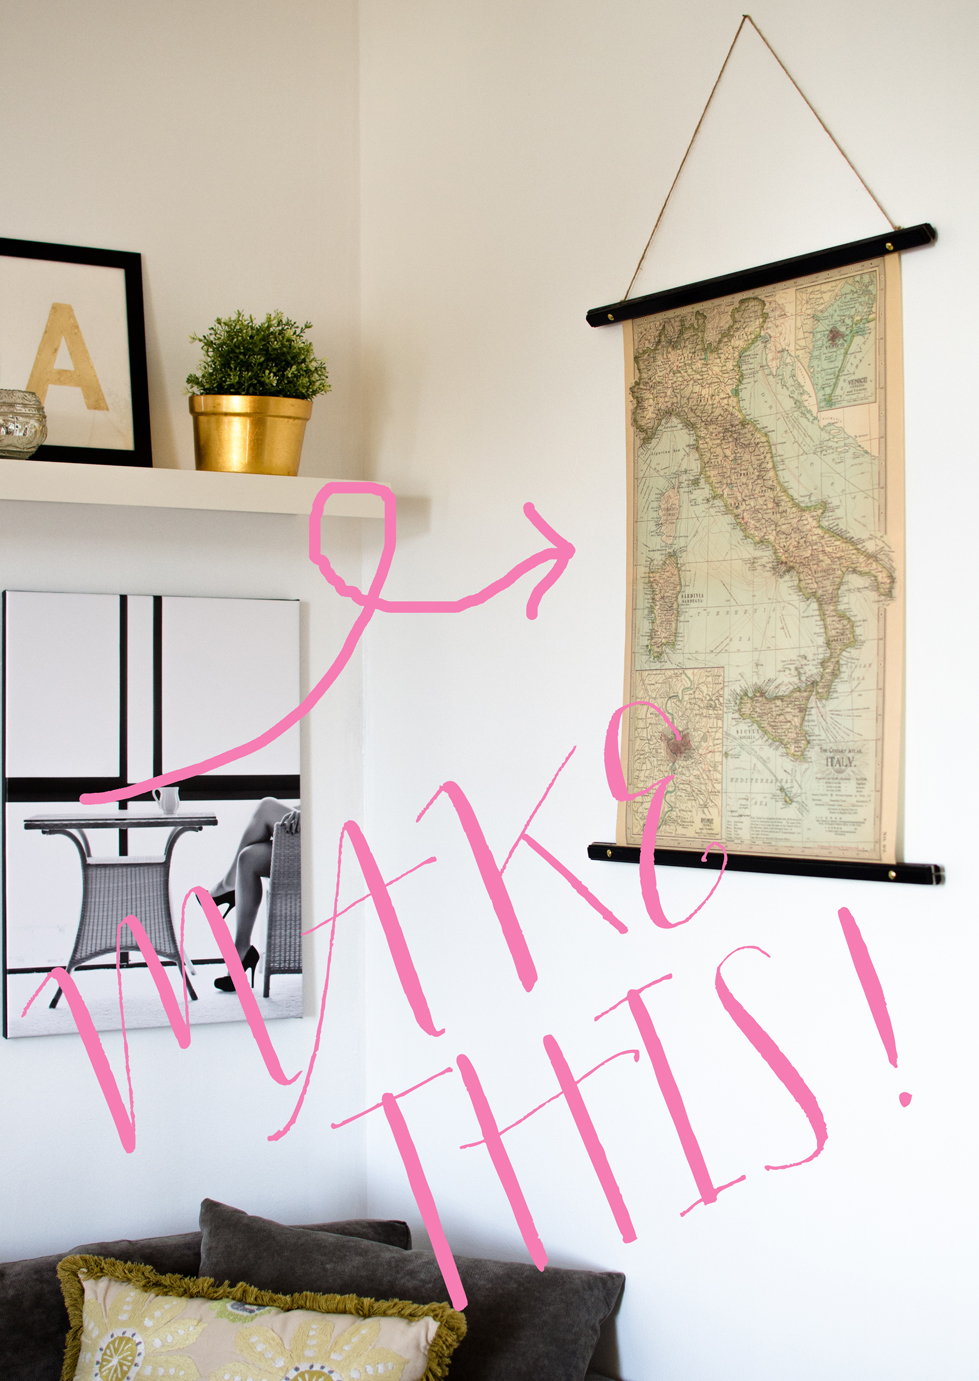 Diy scroll style picture frames house of jade interiors blog for Diy hanging picture display